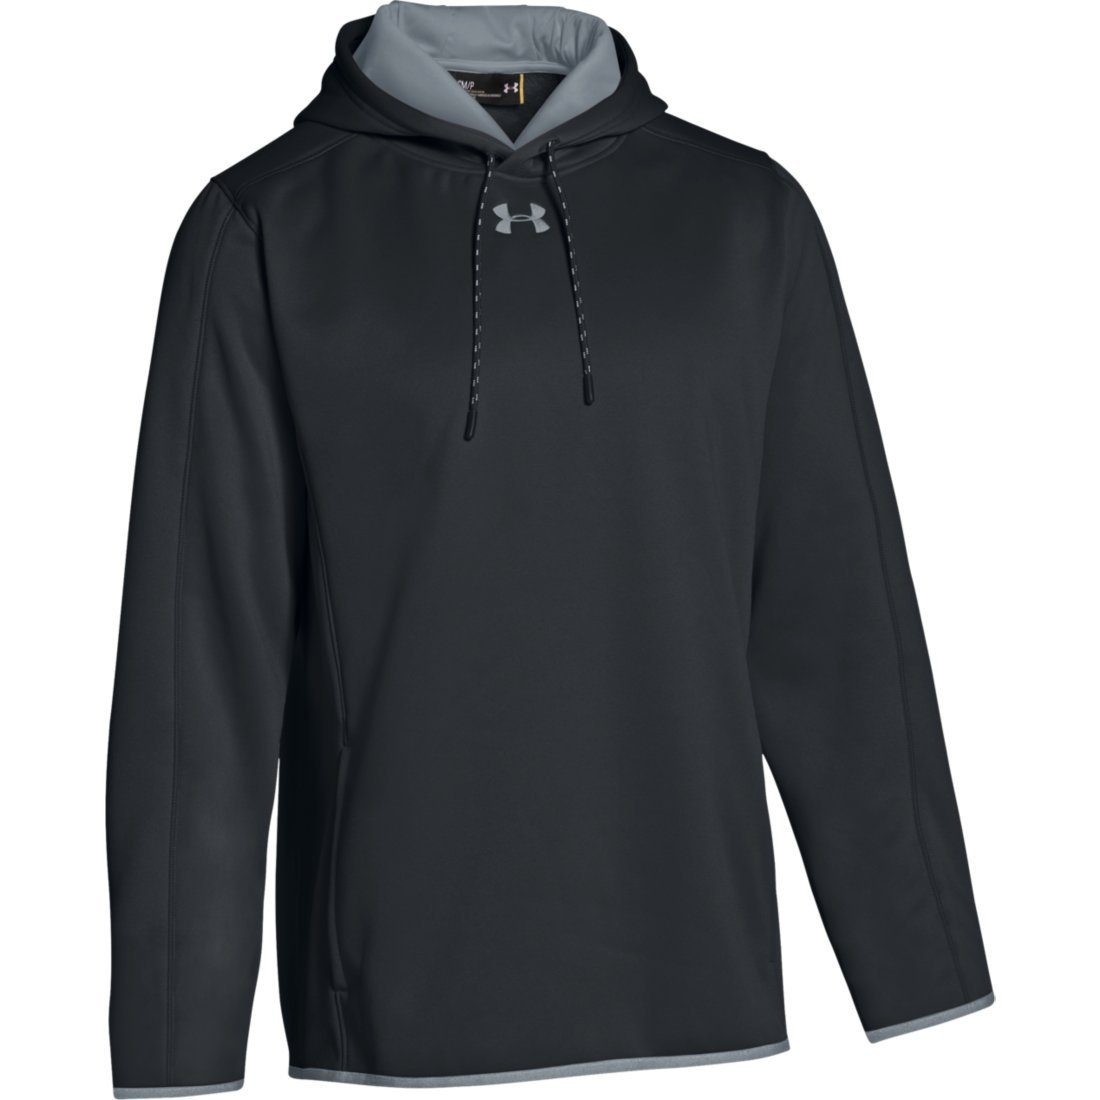 Under Armour Men's Double Threat Fleece Hoody (Large, Carbon Heather)